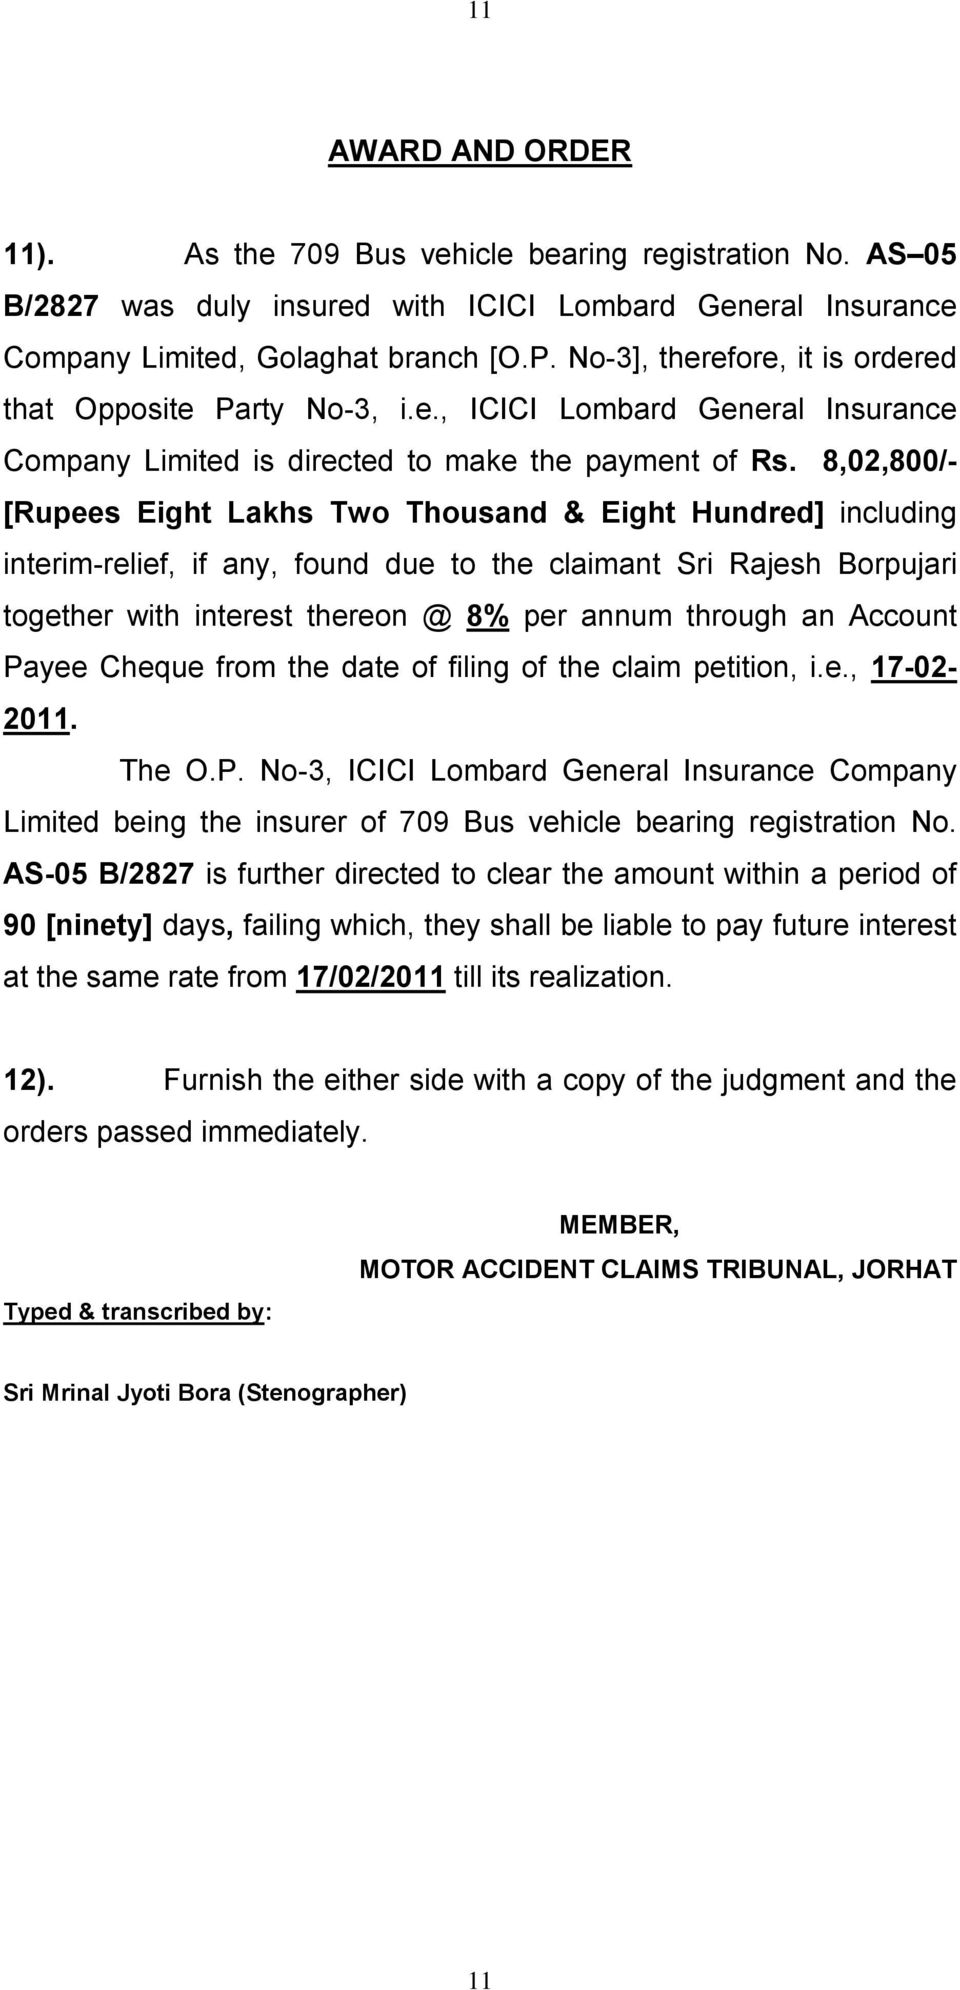 8,02,800/- [Rupees Eight Lakhs Two Thousand & Eight Hundred] including interim-relief, if any, found due to the claimant Sri Rajesh Borpujari together with interest thereon @ 8% per annum through an